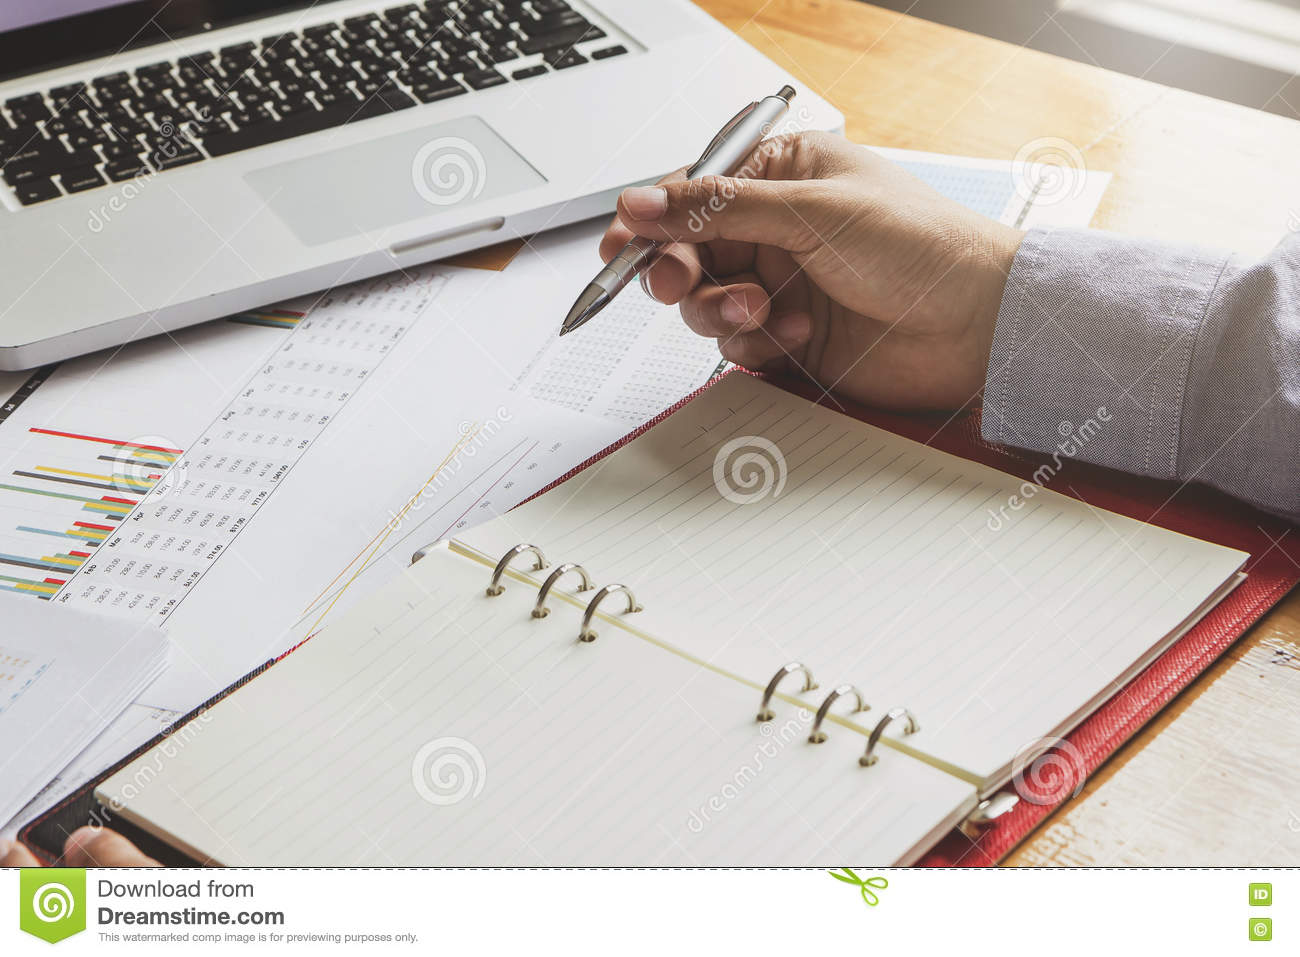 Businessman working with laptop and documents